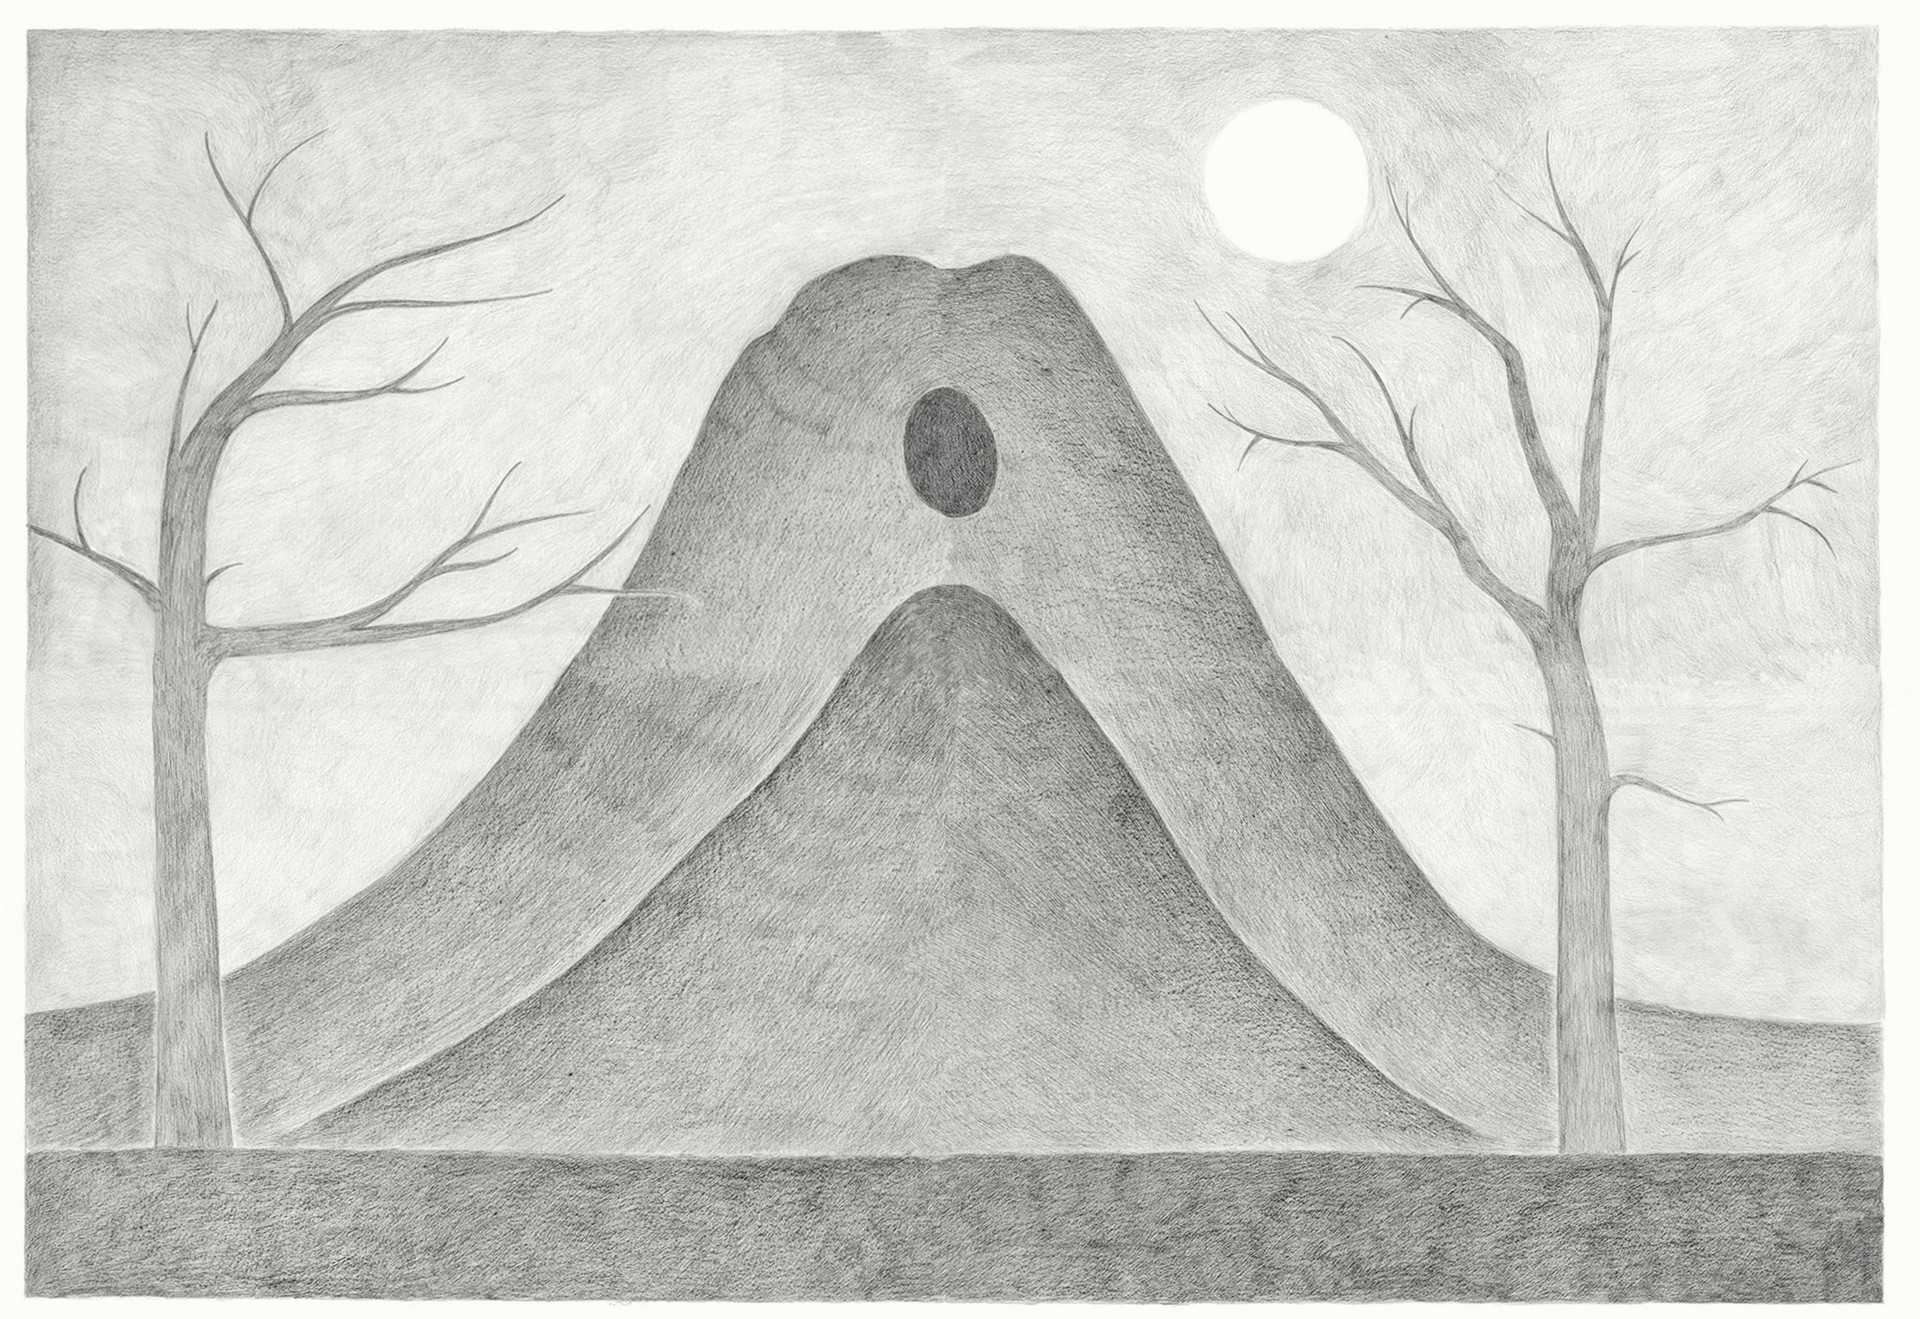 Two Mountains with Cave, 2013. Pencils on paper, 94 × 118 cm